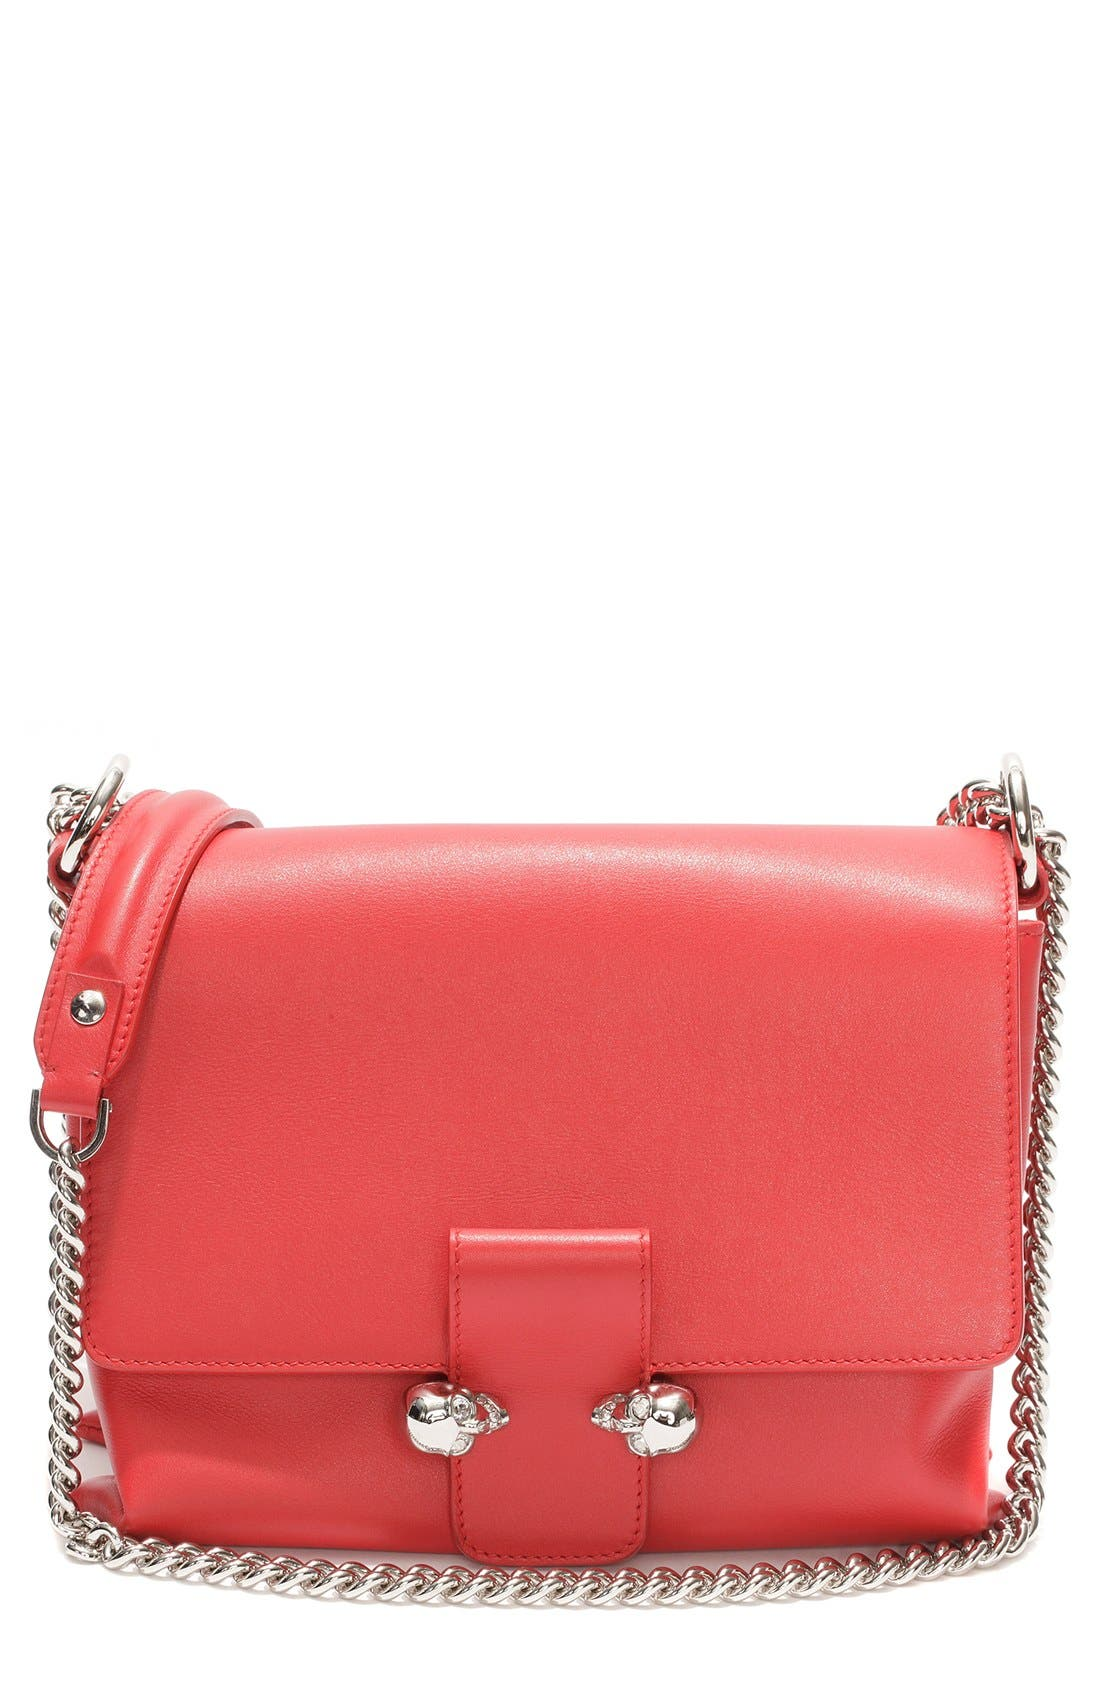 'Medium Twin Skull' Flap Shoulder Bag,                         Main,                         color,